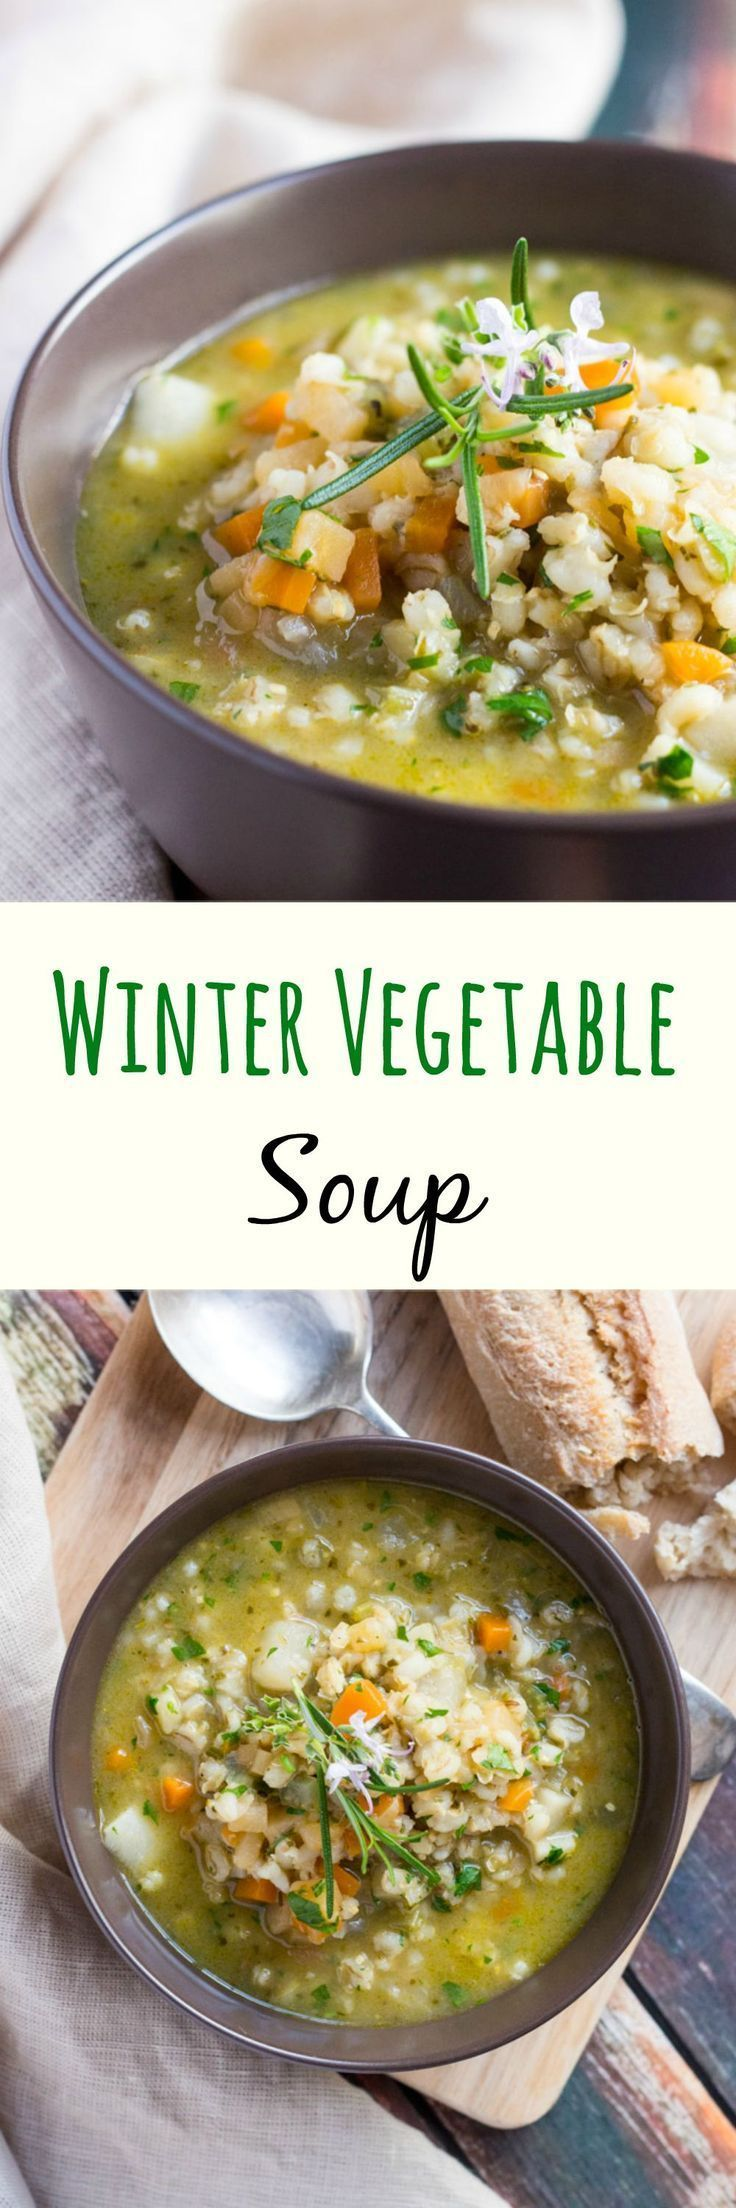 Hearty Winter Vegetable Soup Recipe Healthy Dinner